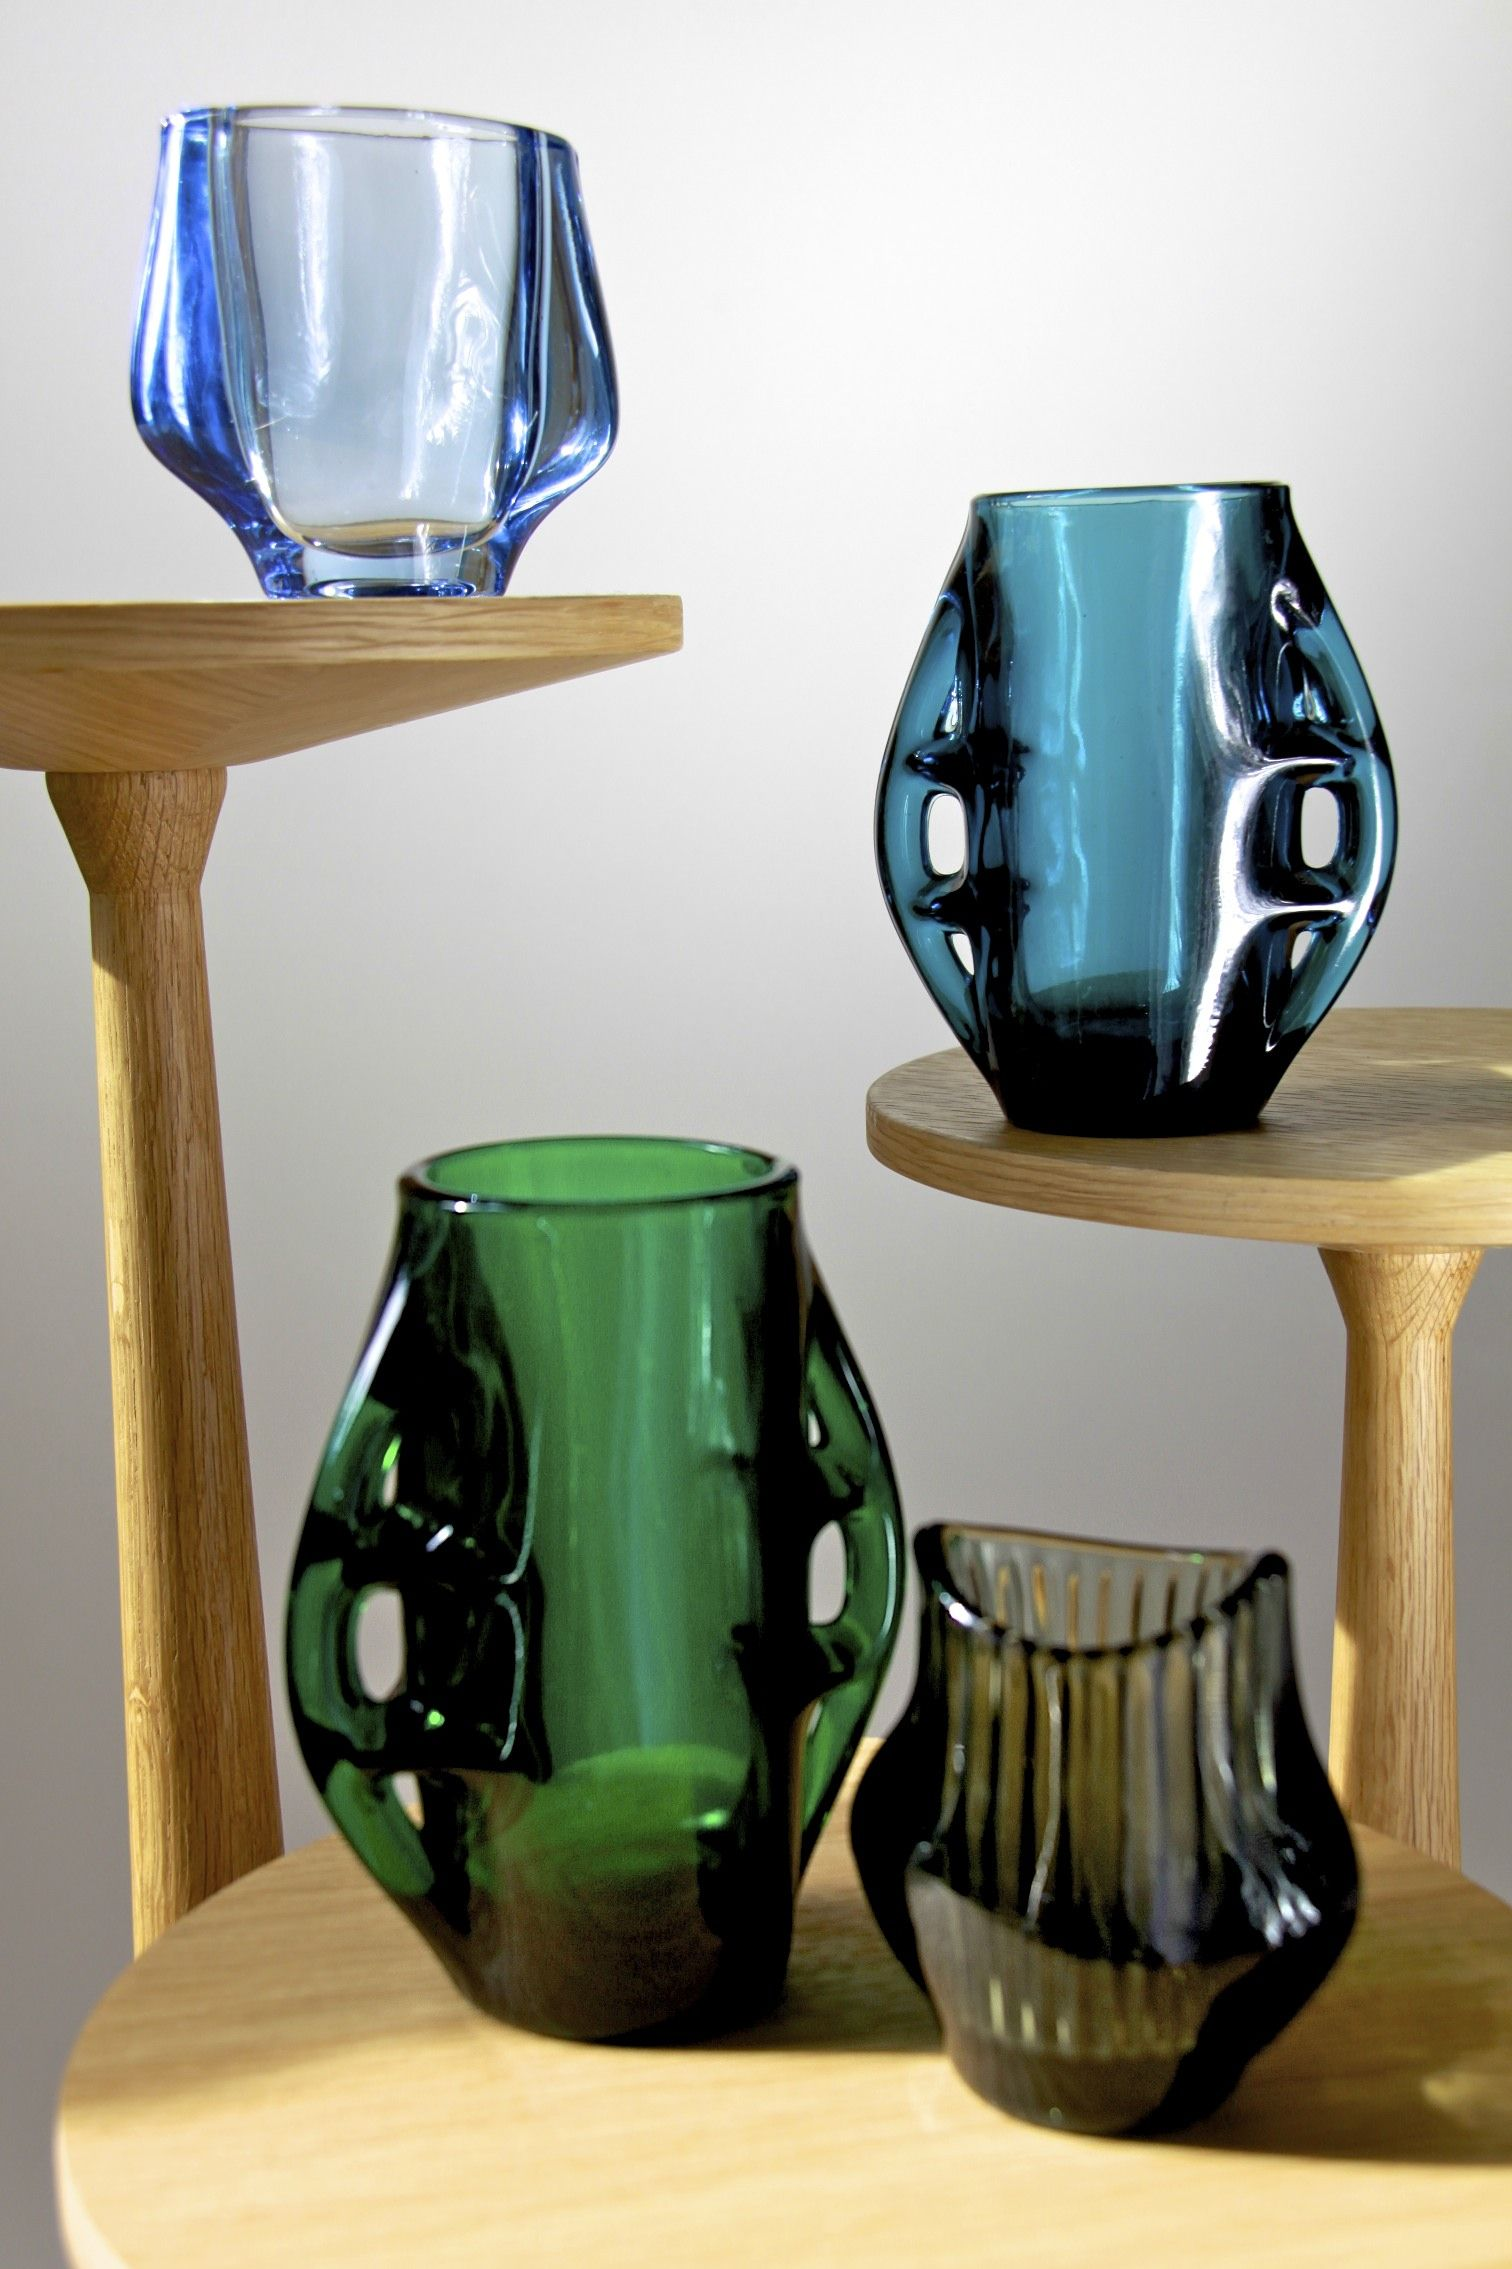 winged pressed glass vase's by Frantisek Vizner for Sklo Union